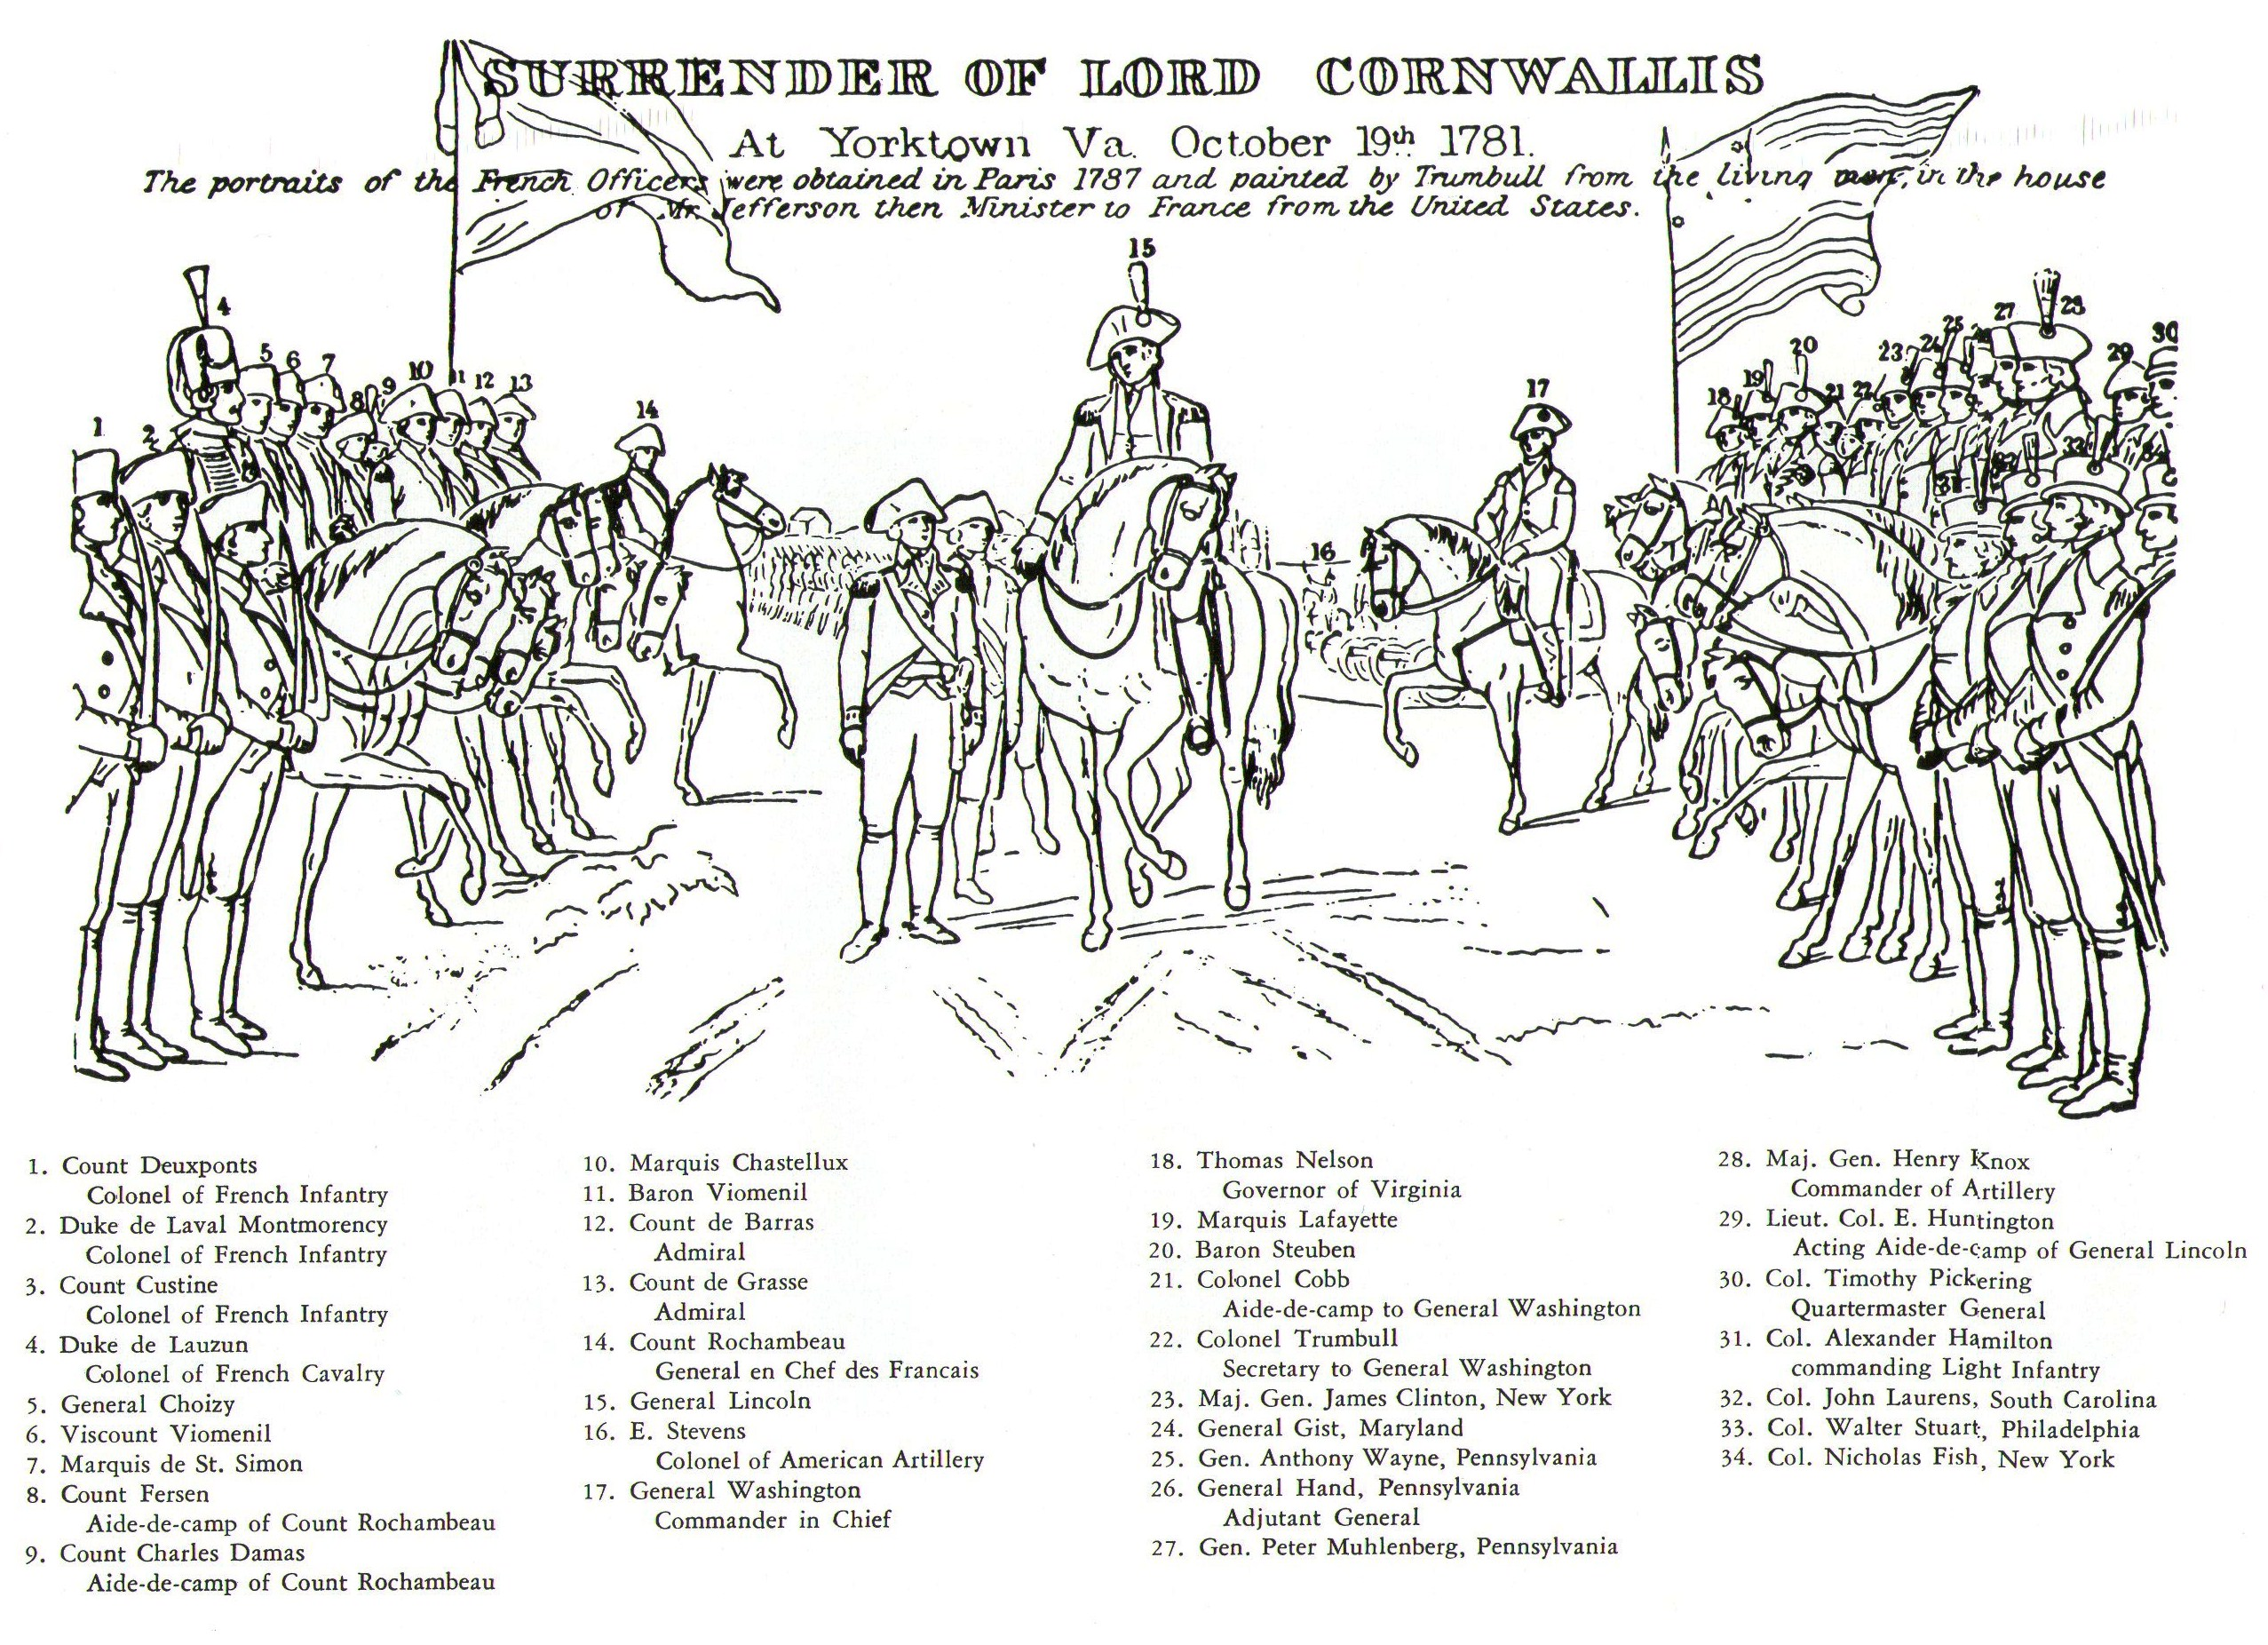 Key to John Trumbull's Surrender of Lord Cornwallis from Art of the United States Capitol, page 145, Washington, D.C.: U.S. Government Printing Office, 1978.